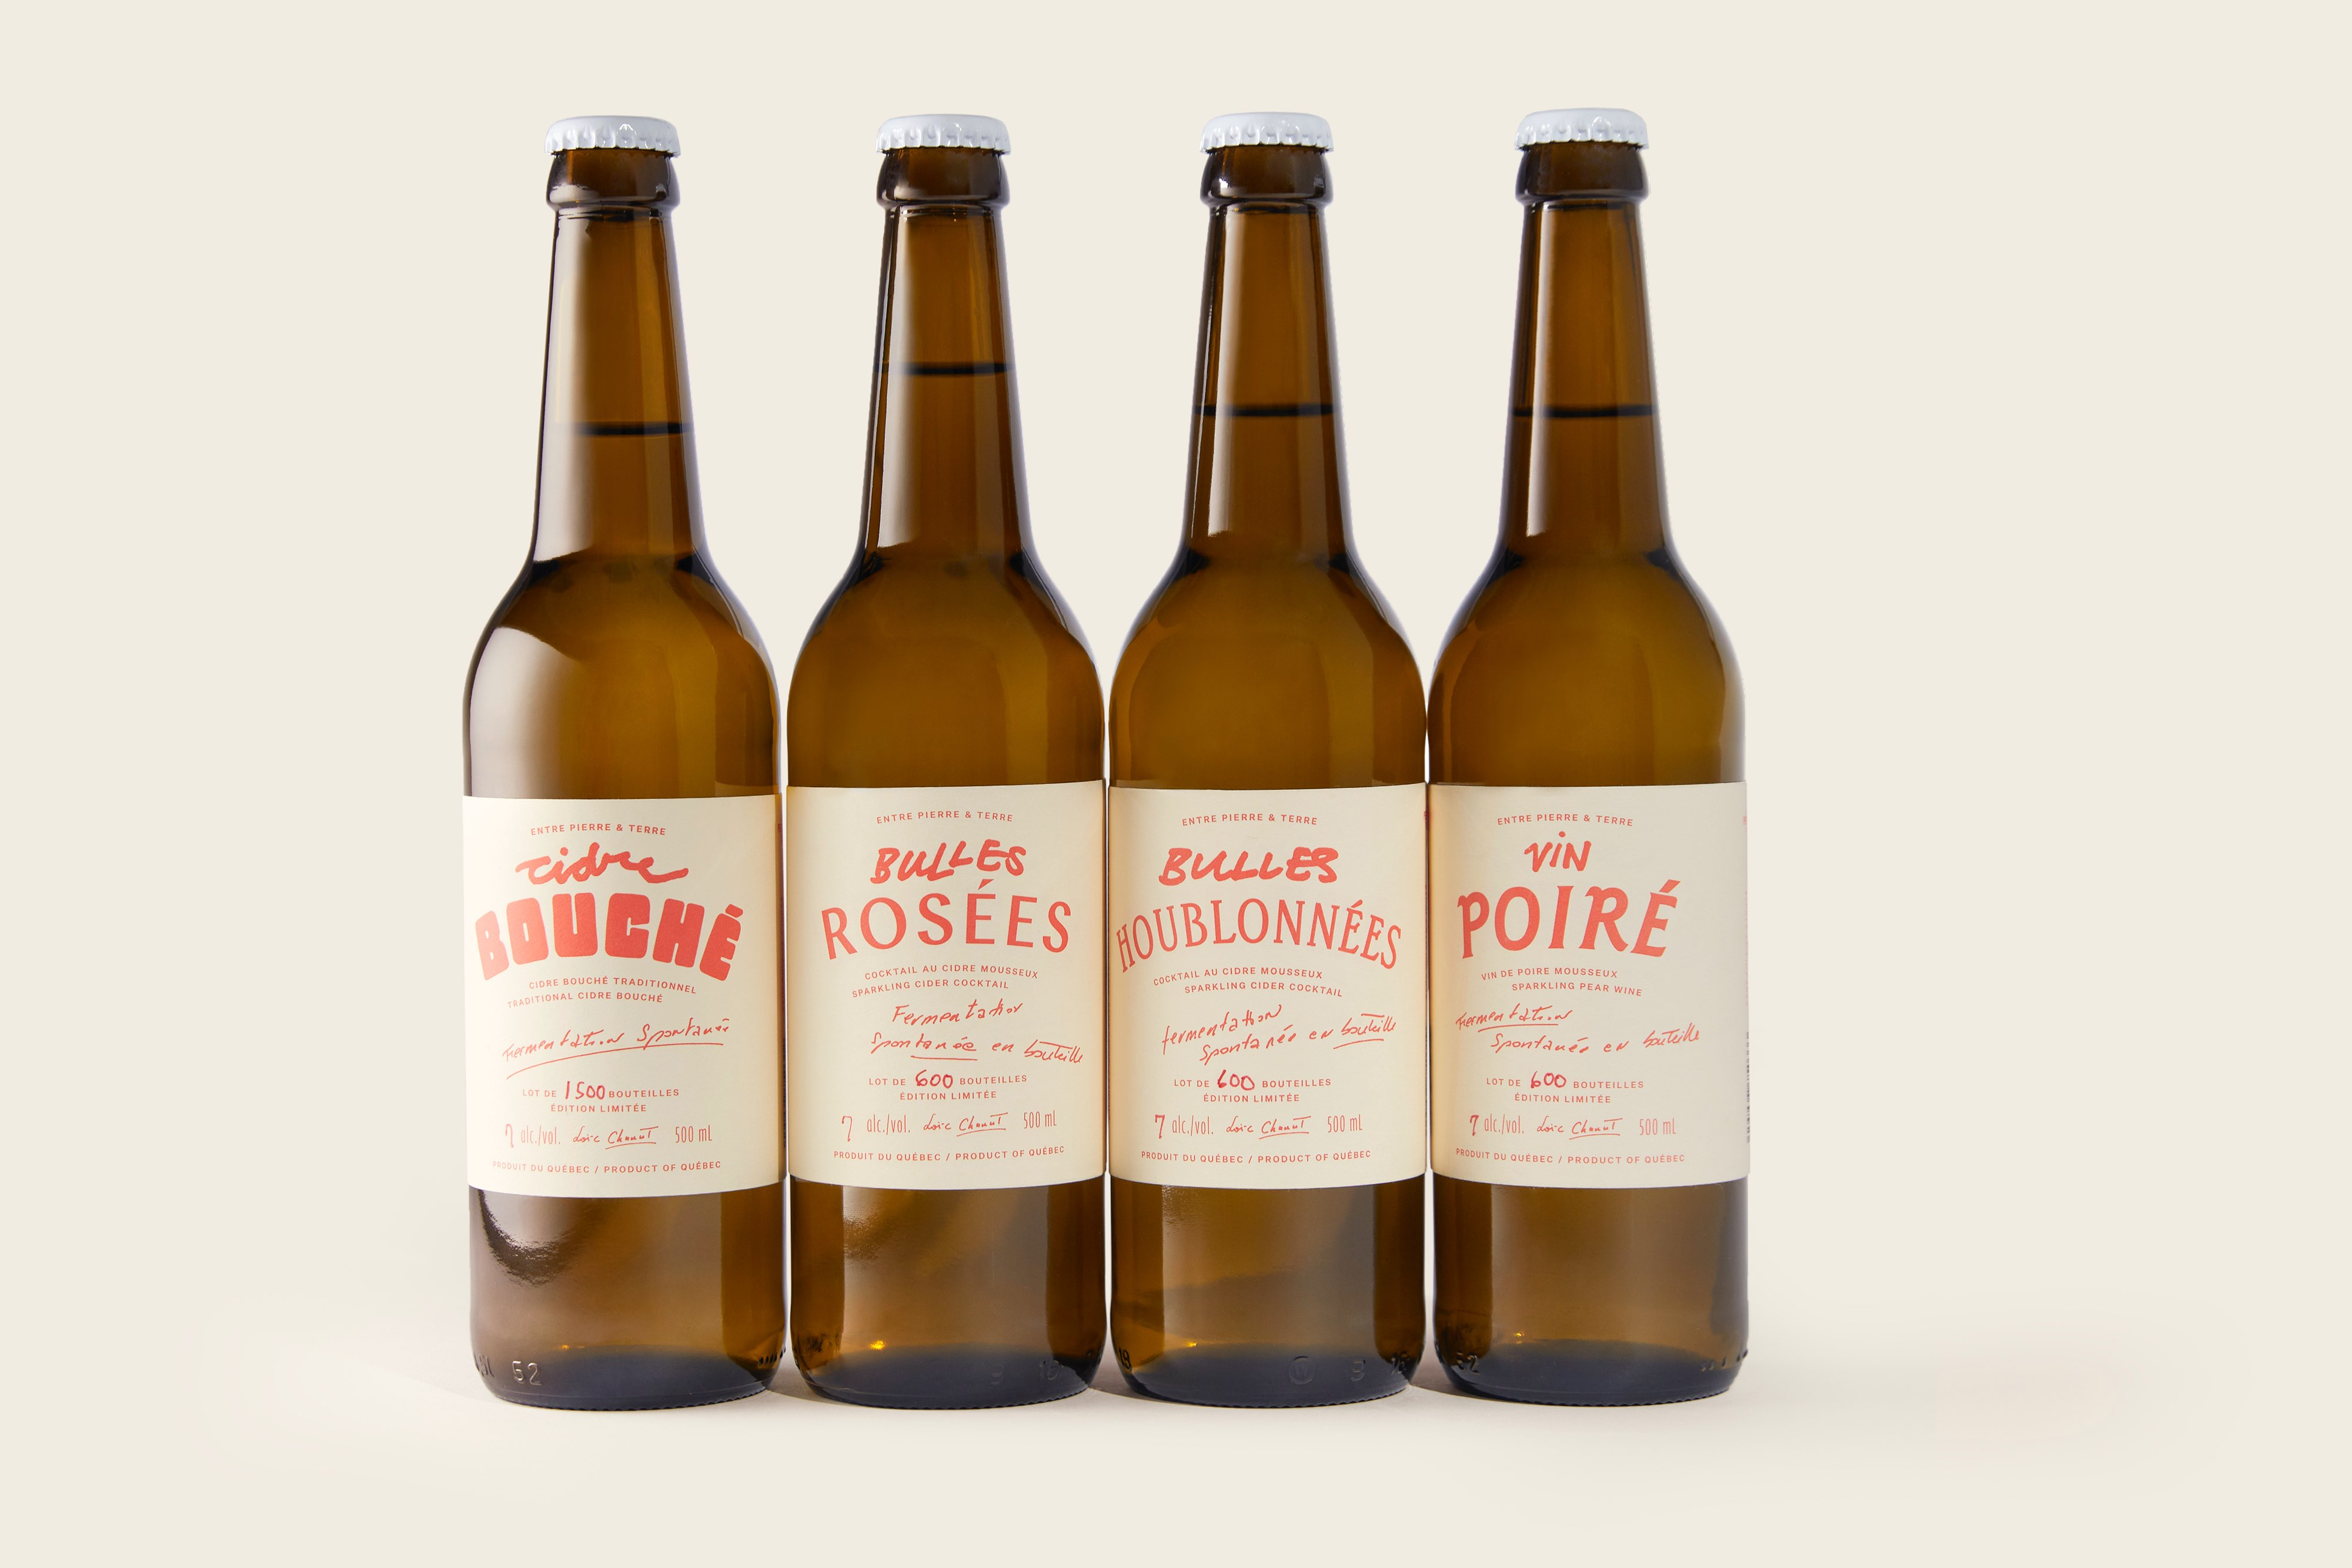 Wedge Helps Ciderie Entre Pierre et Terre in its Celebration of its French Roots